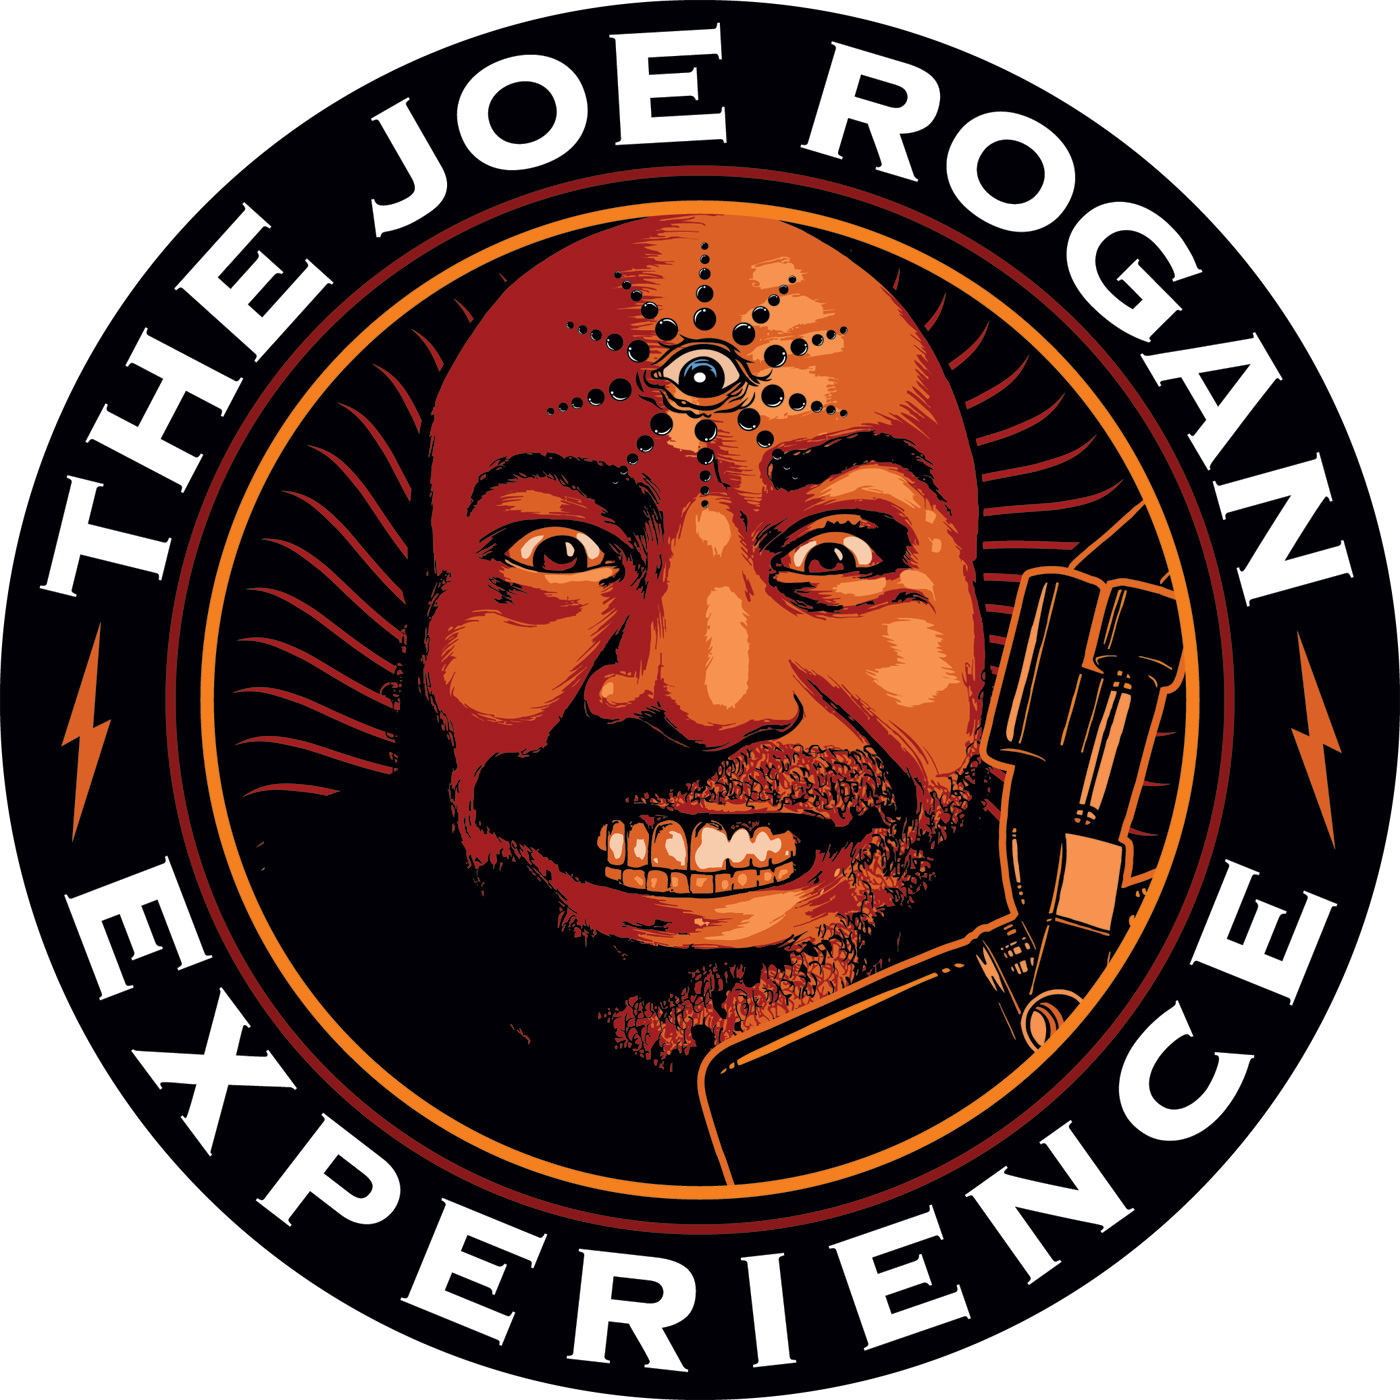 The Joe Rogan Experience PODCAST #65 - Joey Diaz, Brian Redban